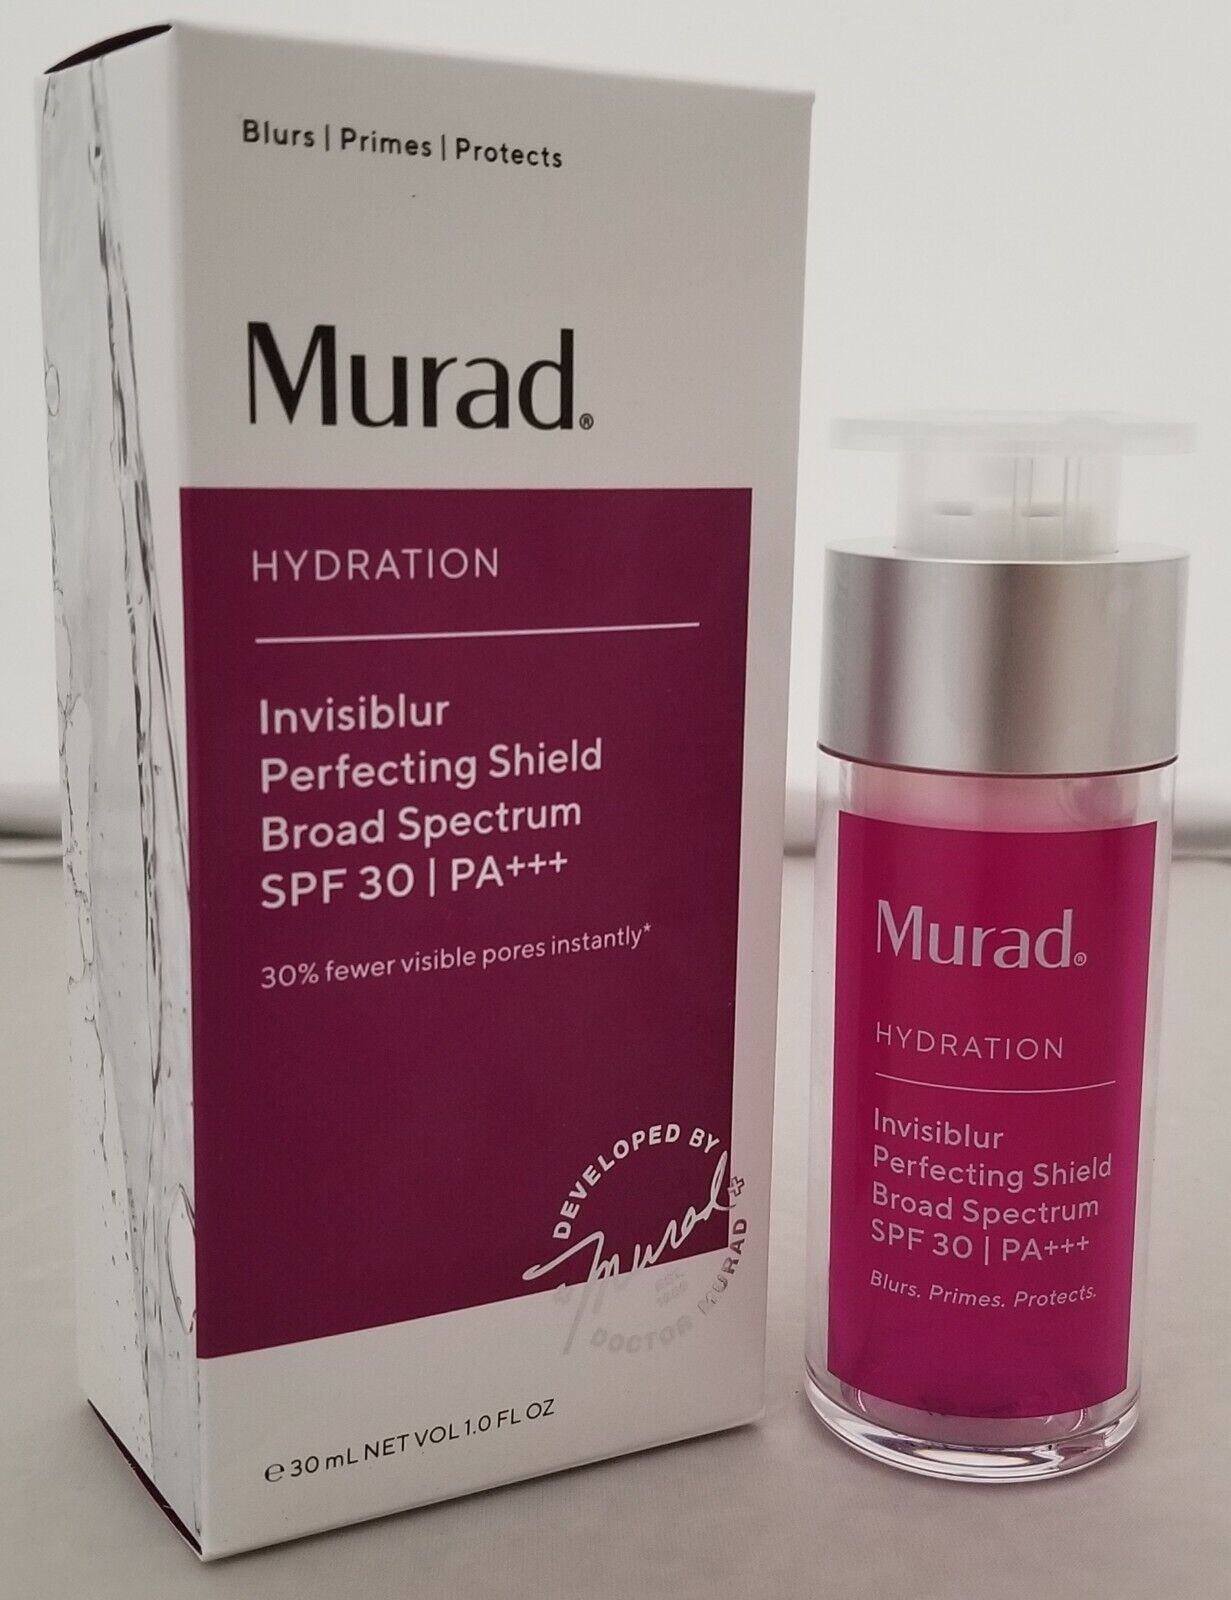 Murad Hydration Invisiblur Perfecting Shield SPF 30, EXP 01/